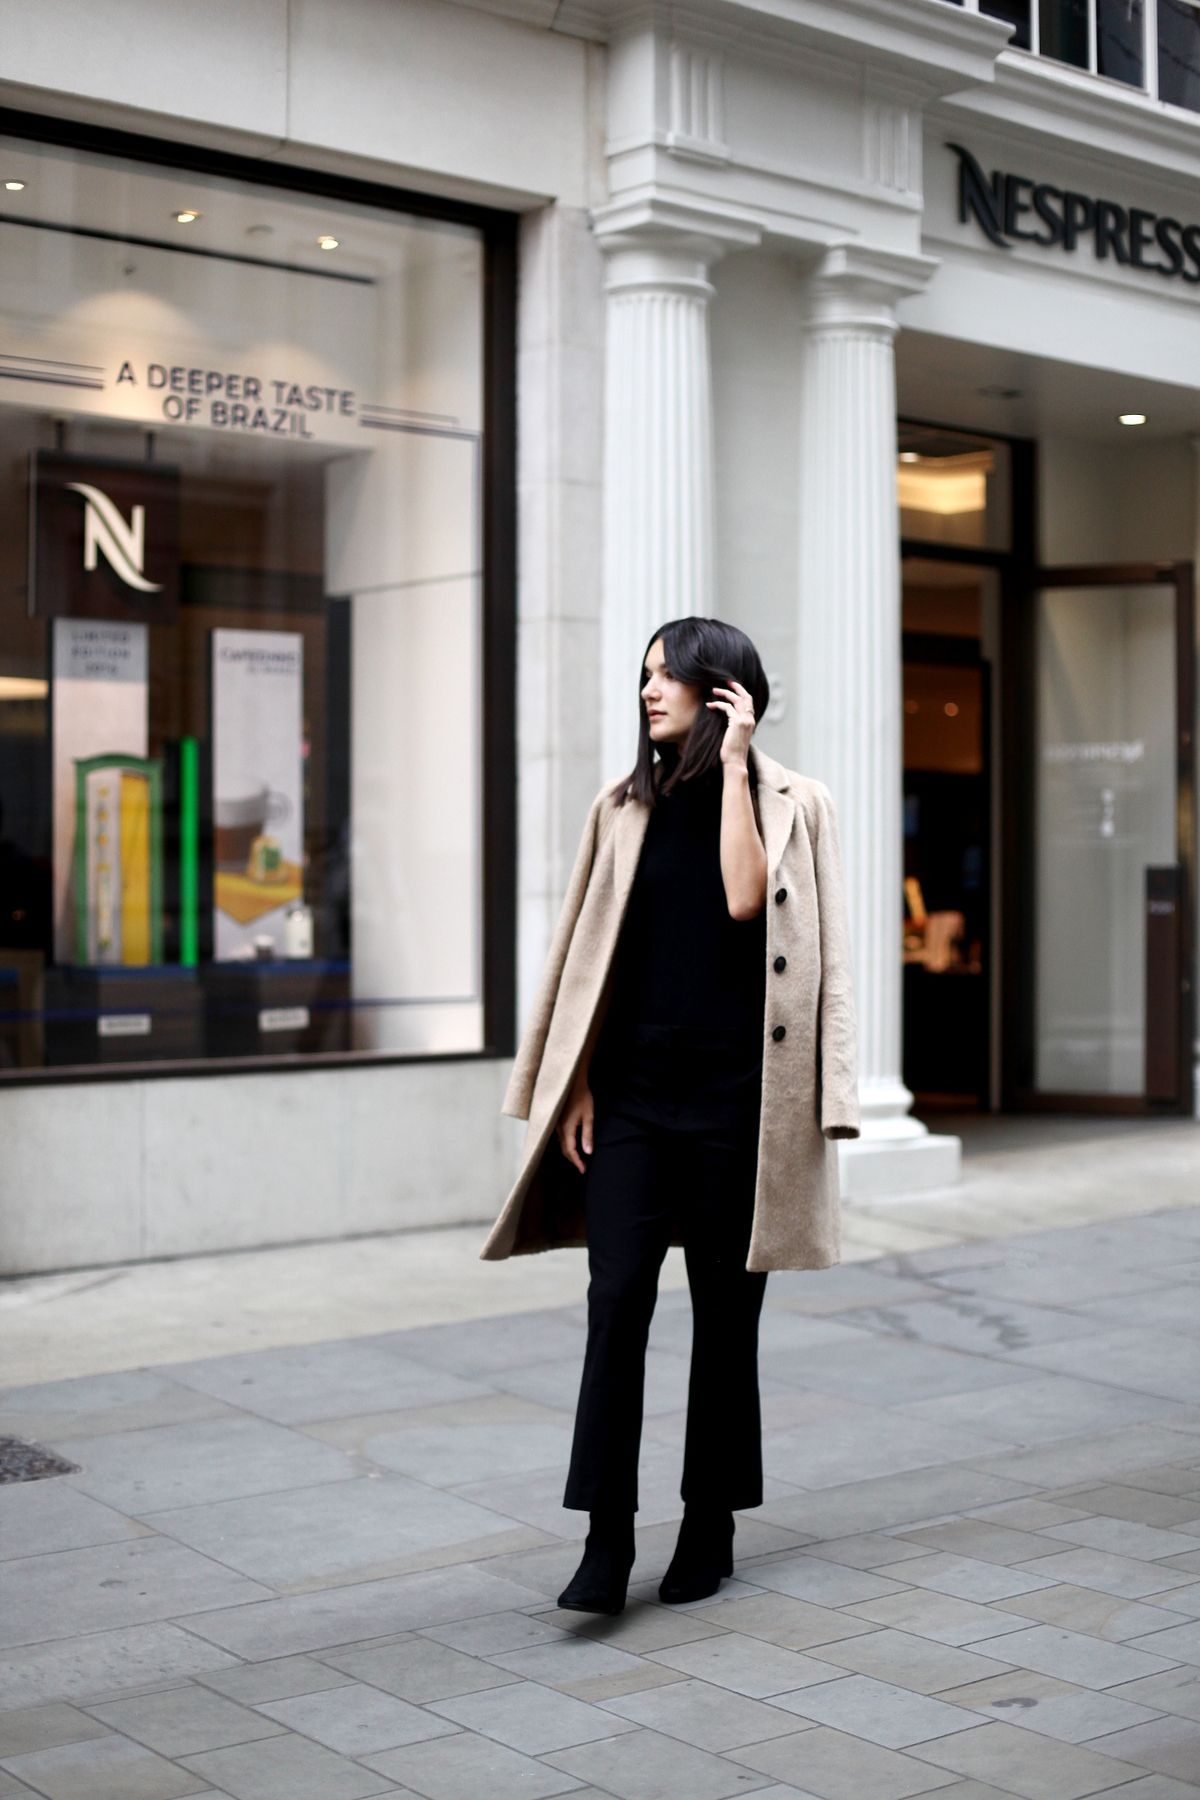 Anisa Sojka styles camel brown Boden coat | Black high-neck ASOS body top with strappy back | Flare crop trousers | Ankle boot with heel | Straight shoulder length brunette hair | Minimal fashion blogger street style shot in London by Alice Reinhardt